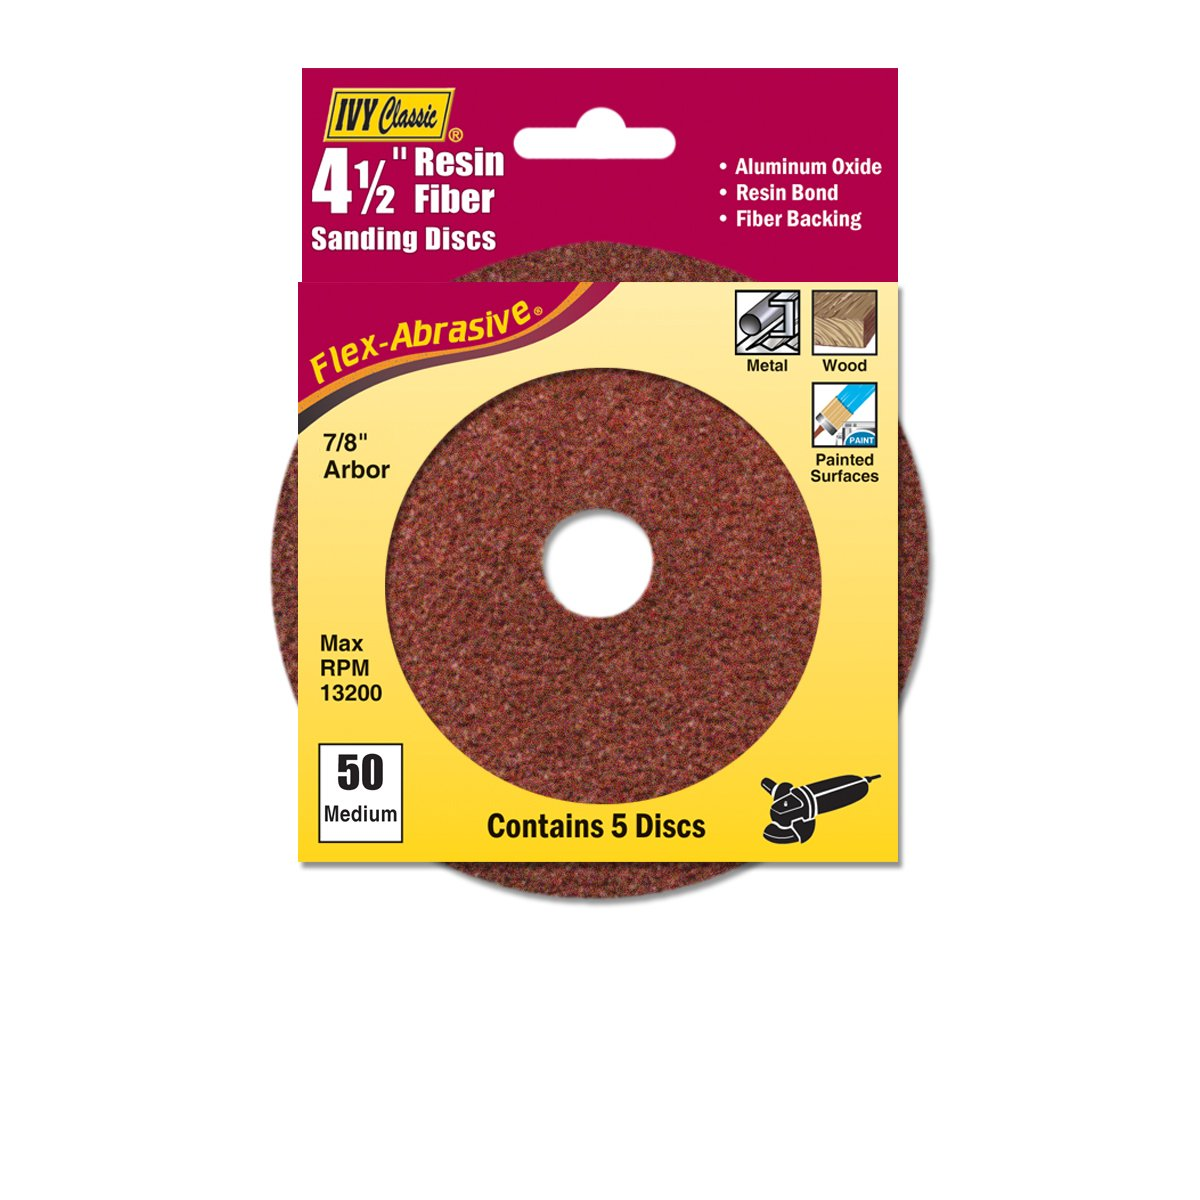 IVY Classic 42308 Flex-Abrasive 4-1/2-Inch x 7/8-Inch 50 Grit Medium Resin Fiber Disc, 5/Card